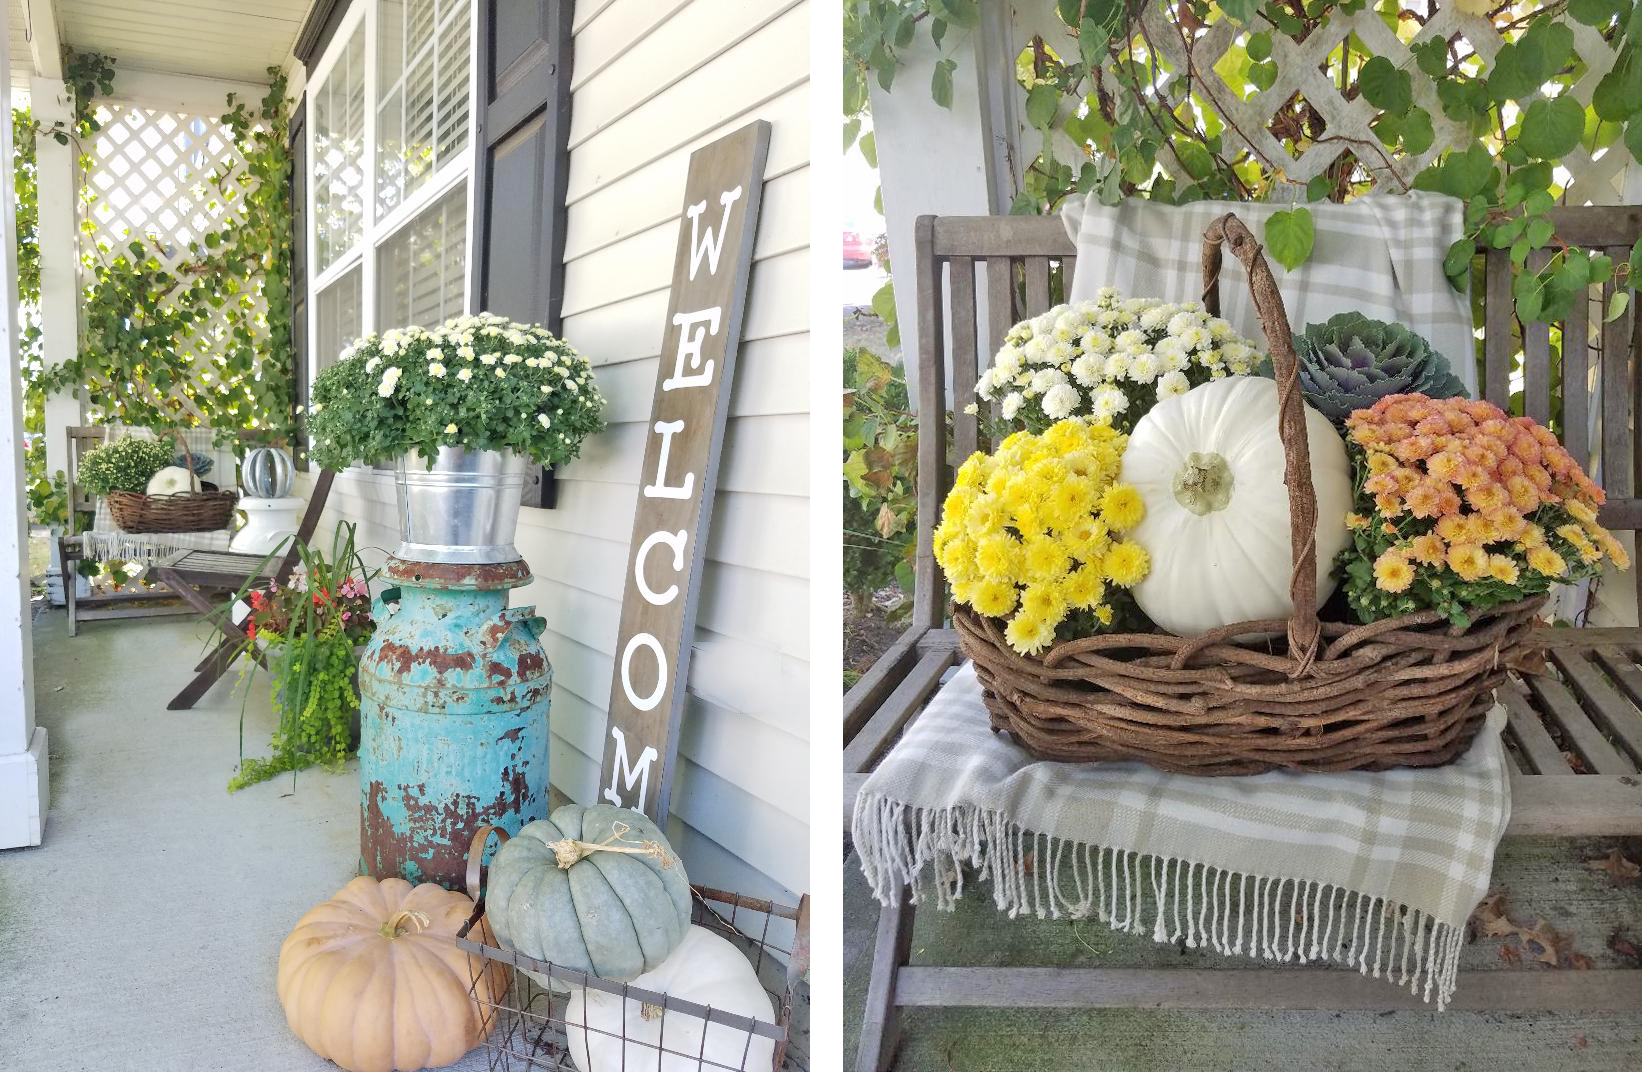 Fall Front Porch Décor Ideas and Inspiration #fallfrontporchdecor